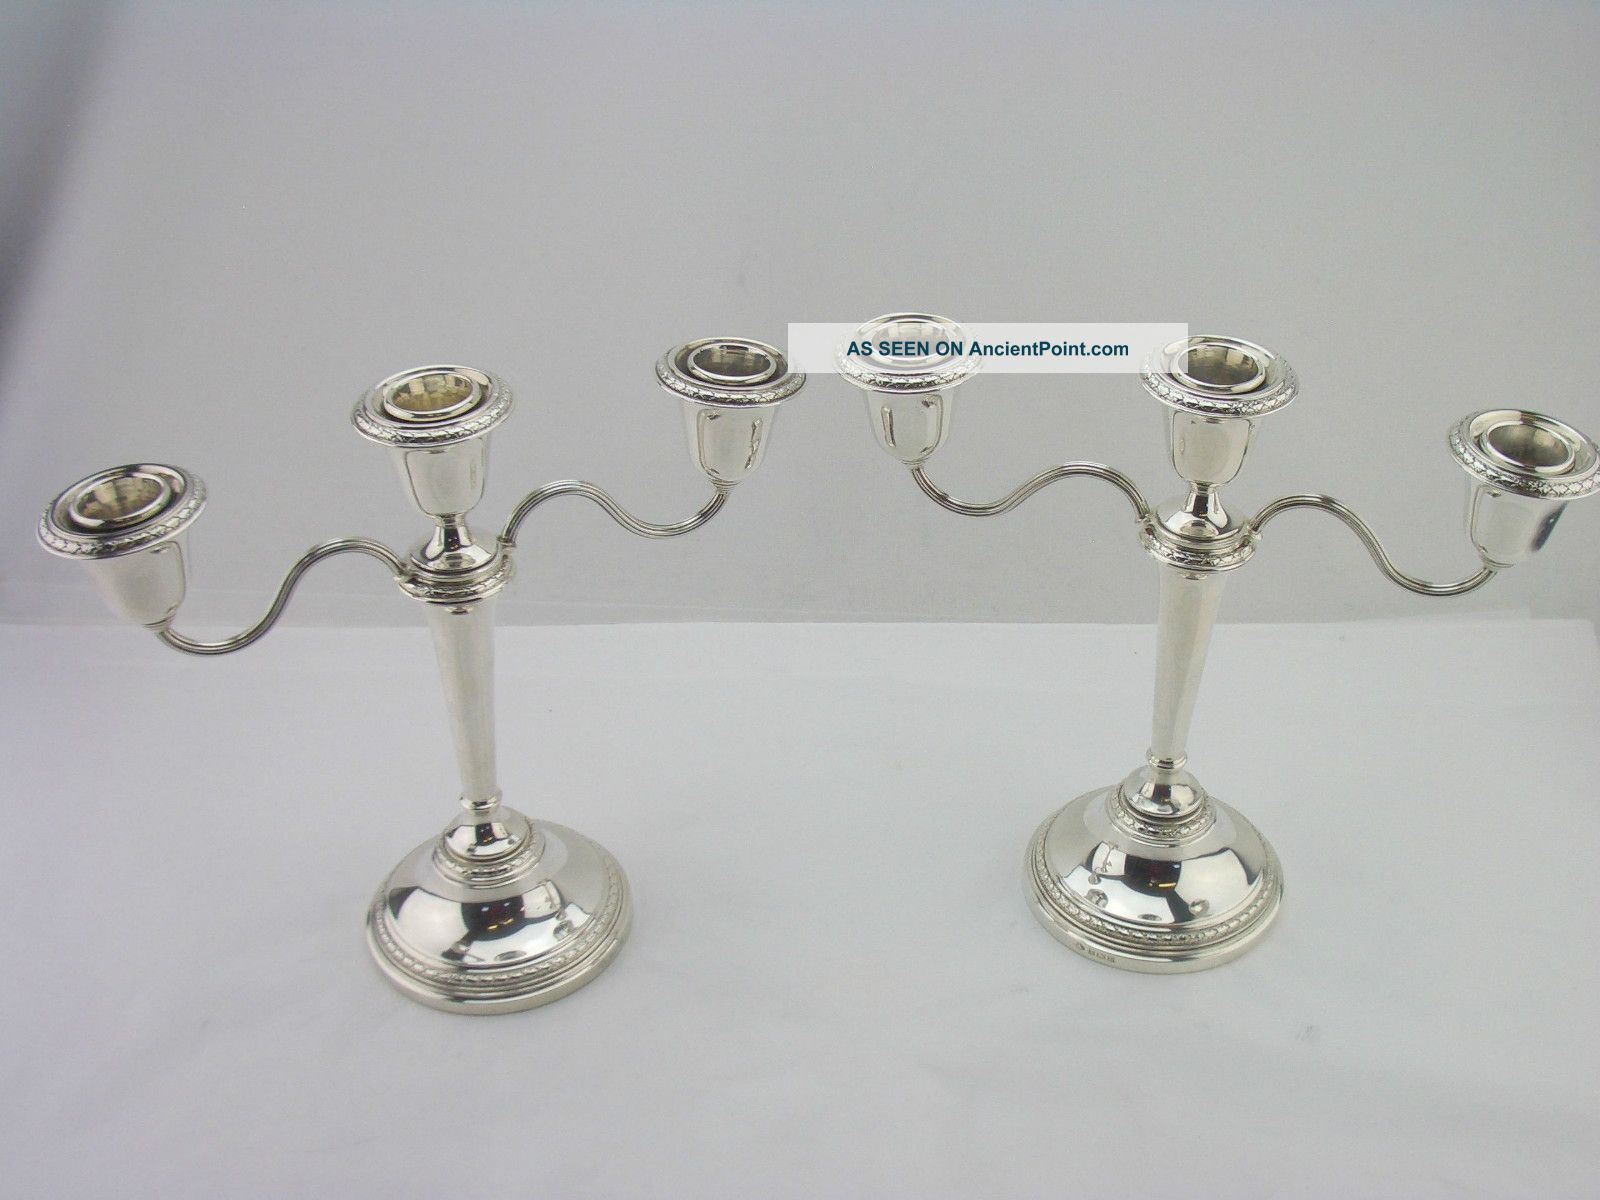 Attractive Silver Candelabras Birmingham 1959 Adie Brothers Other photo